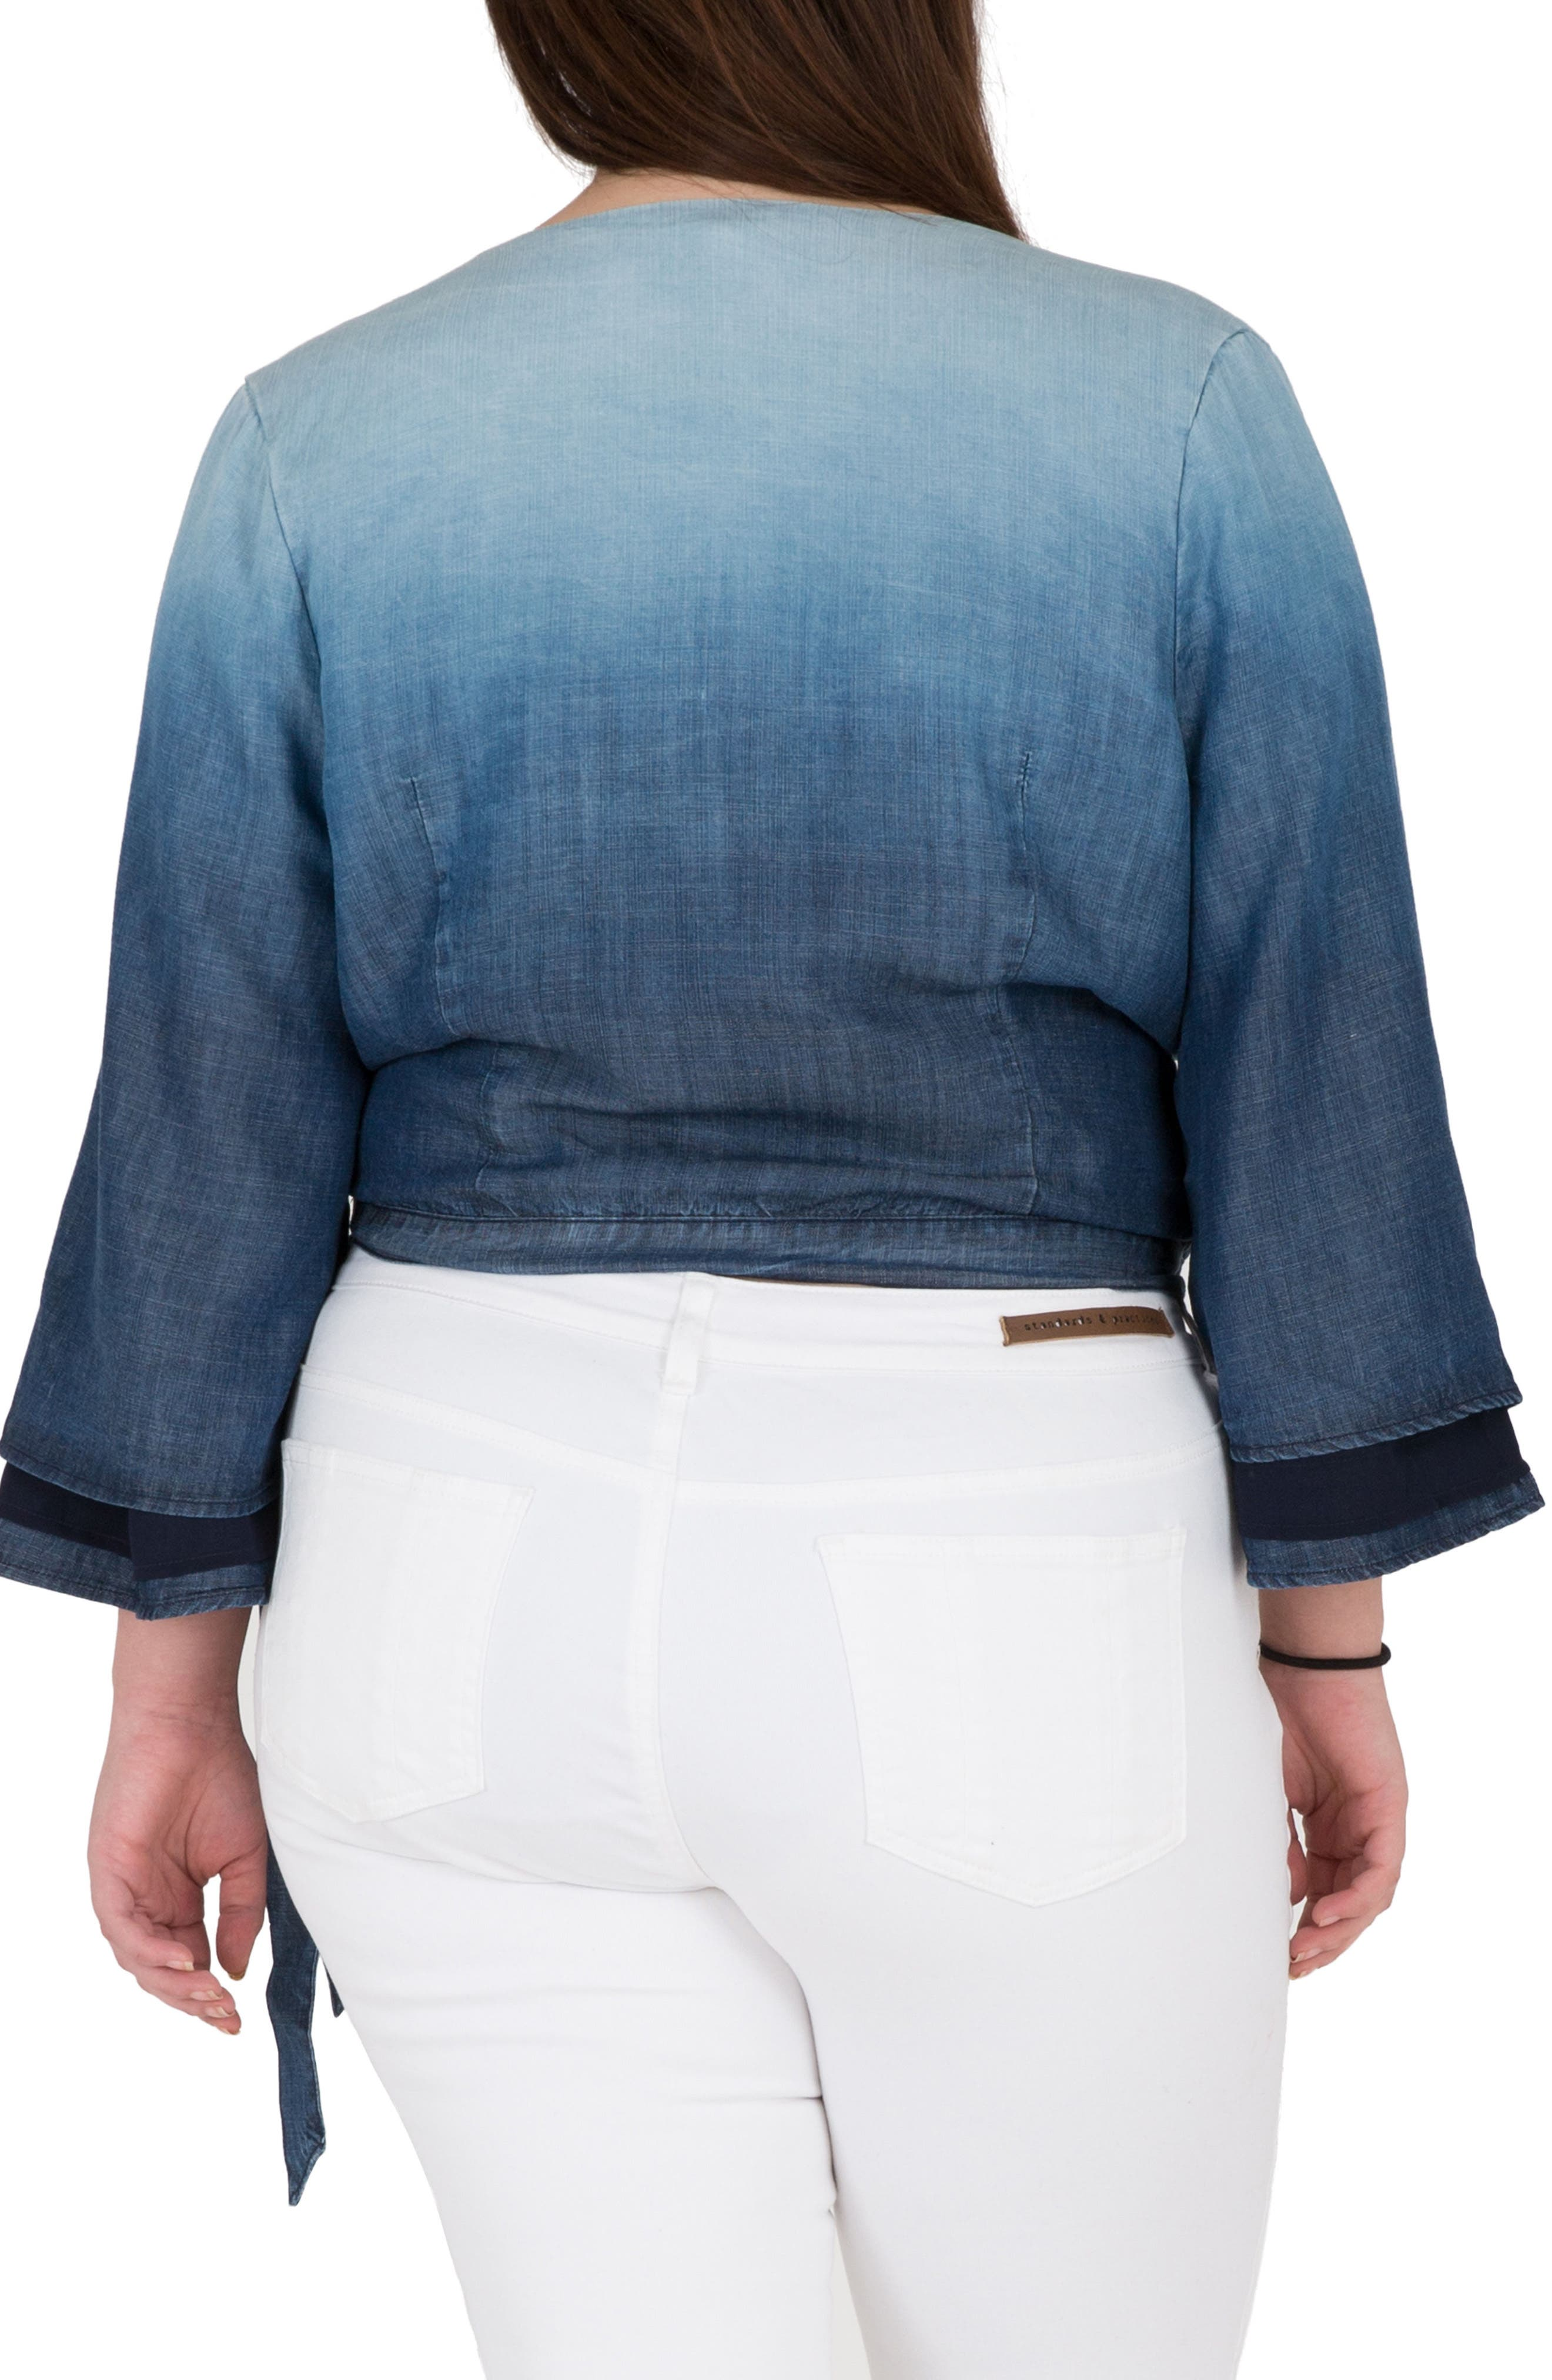 Lily Ombré Denim Wrap Crop Top,                             Alternate thumbnail 2, color,                             Medium Blue